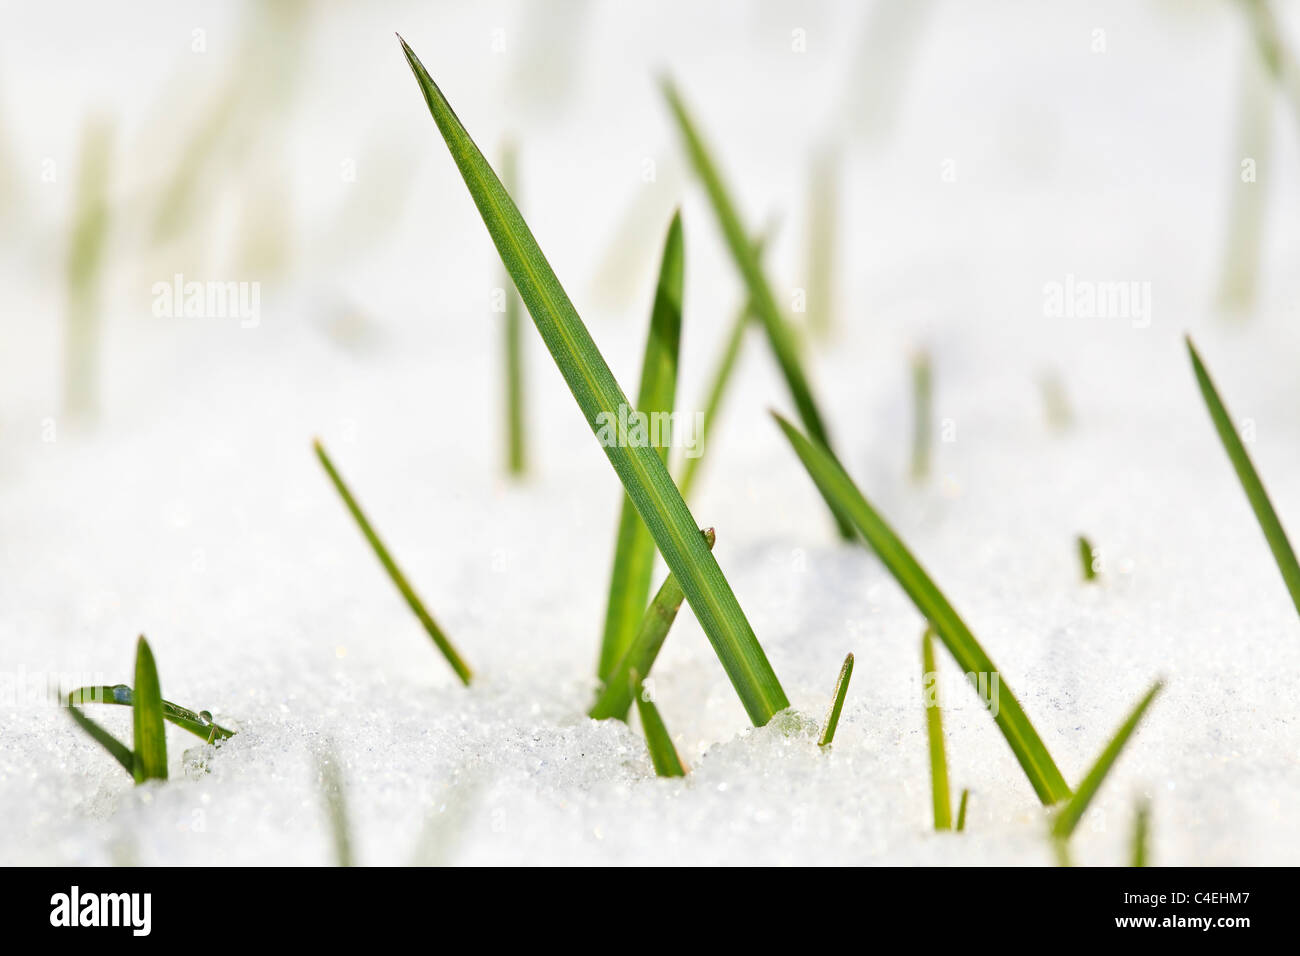 Brins d'herbe dans la neige, Close up. Winnipeg, Manitoba, Canada. Photo Stock